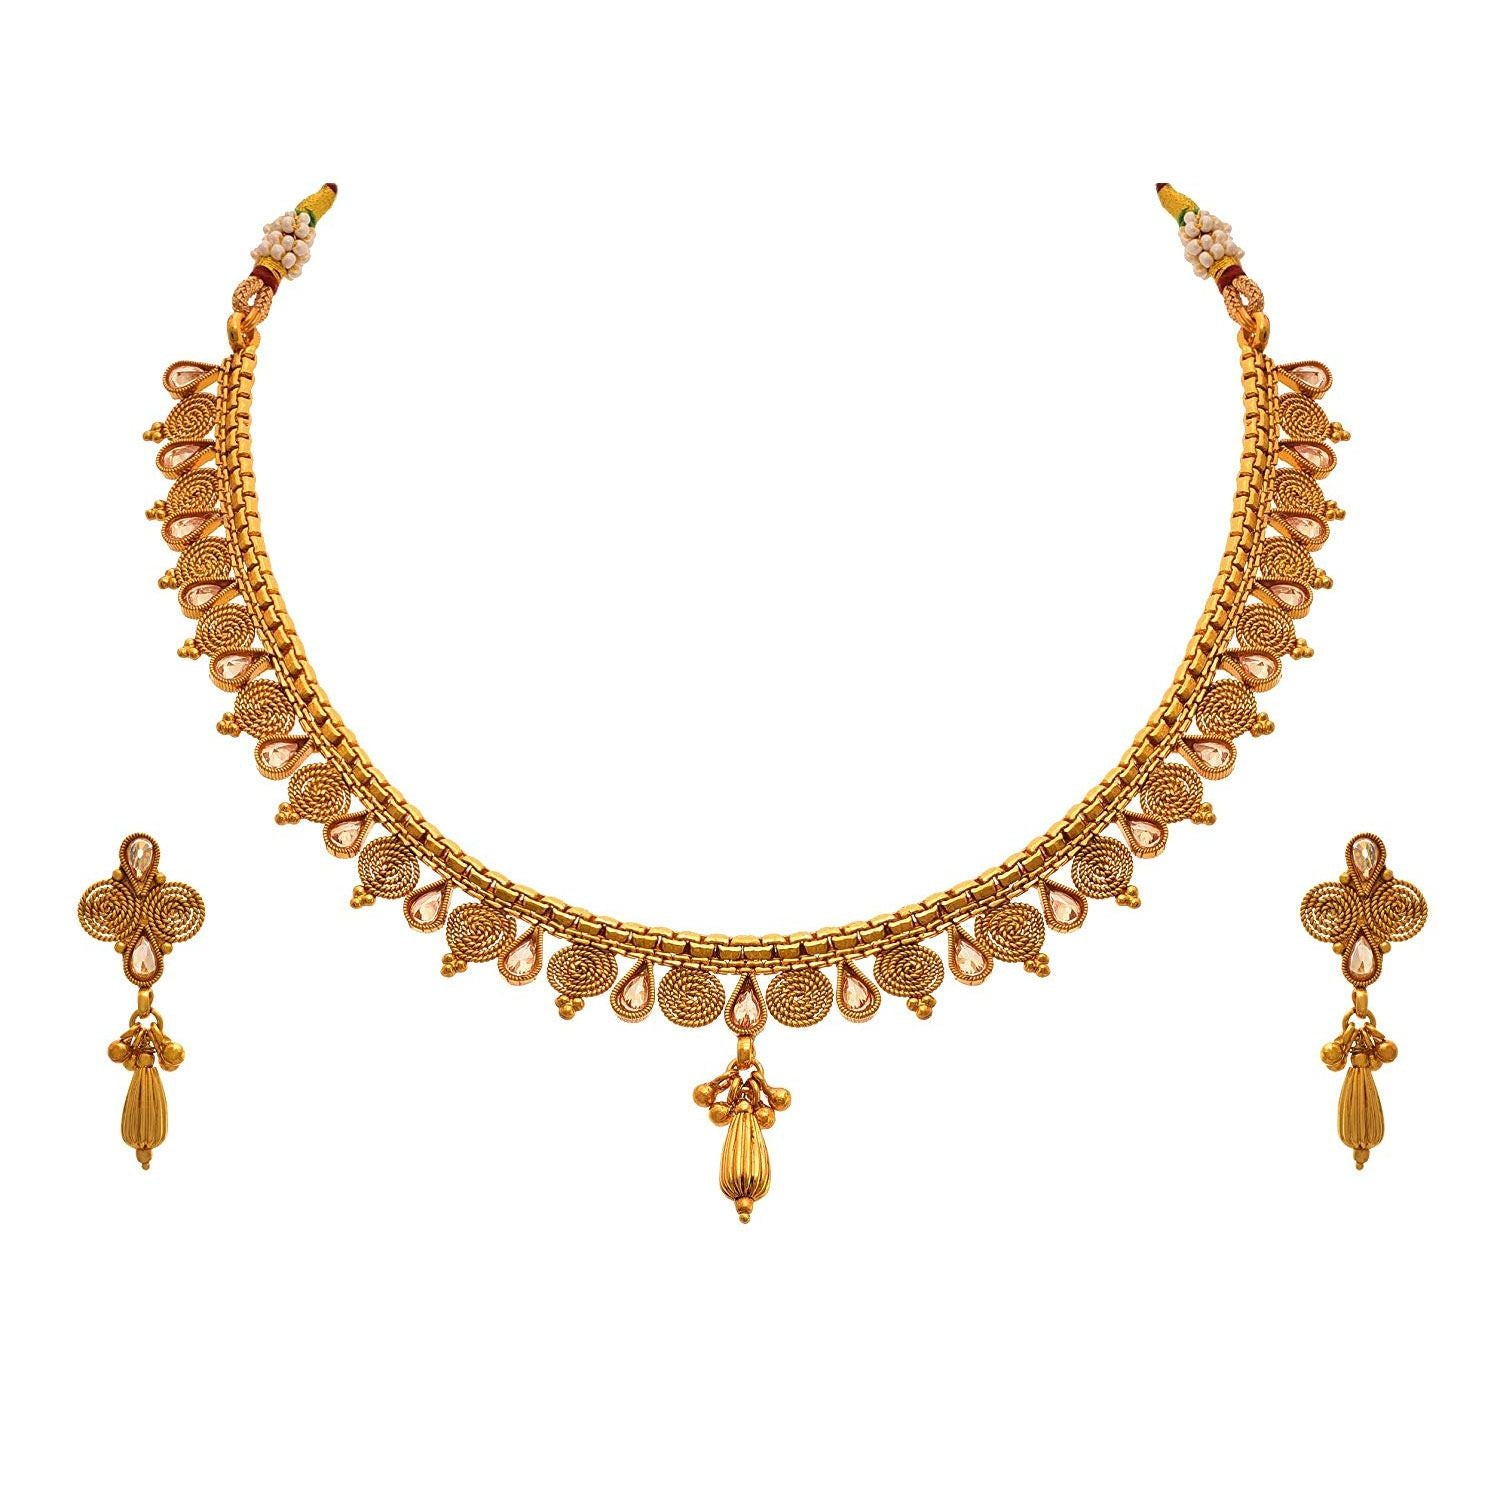 JFL - Traditional Ethnic One Gram Gold Plated Spiral Polki Diamond Designer Necklace set with Earring for Women & Girls.